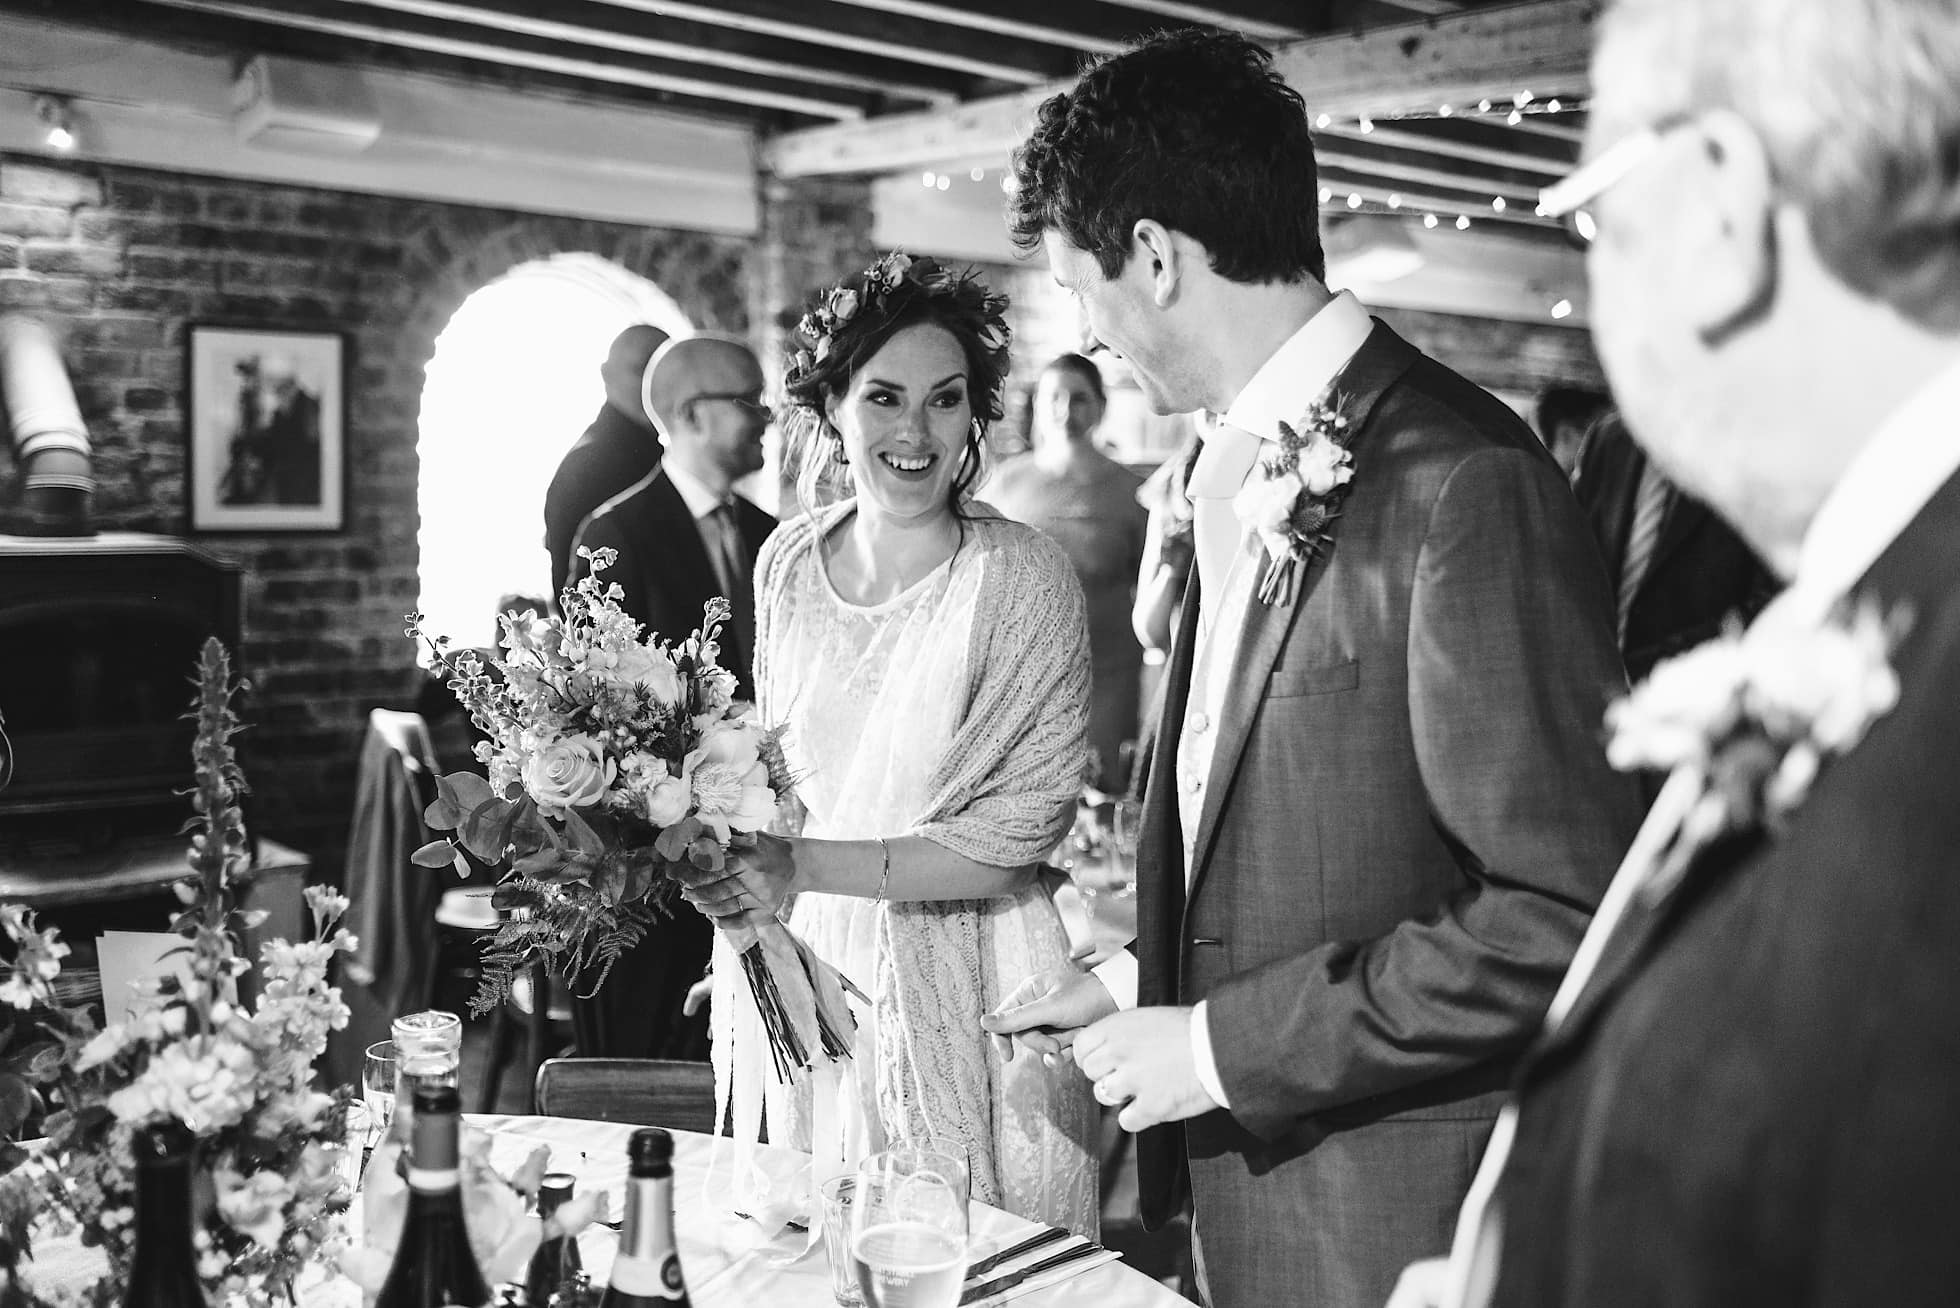 A warm welcome to the bride and groom